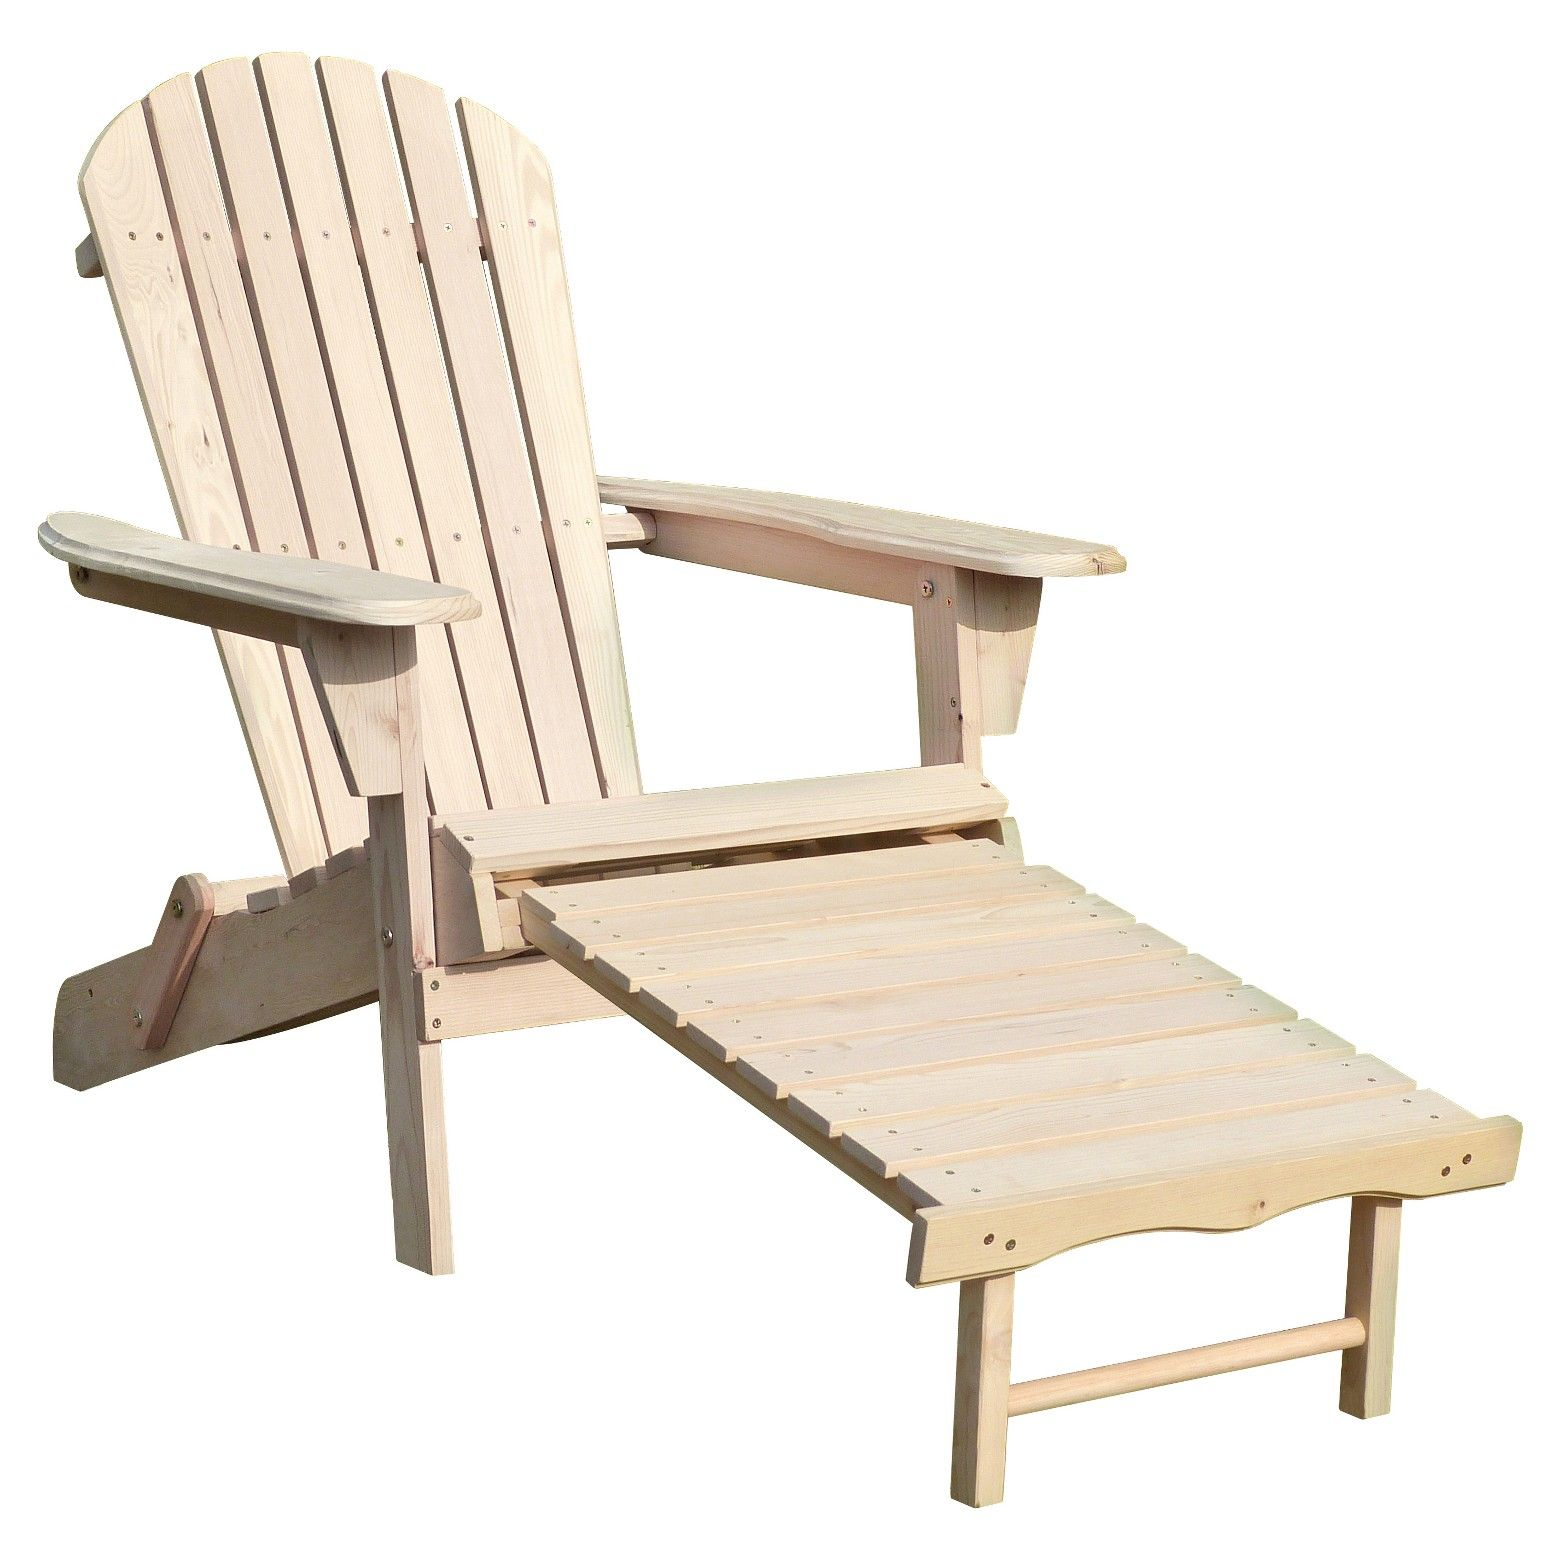 This Adirondack chair made out of Canadian Hemlock